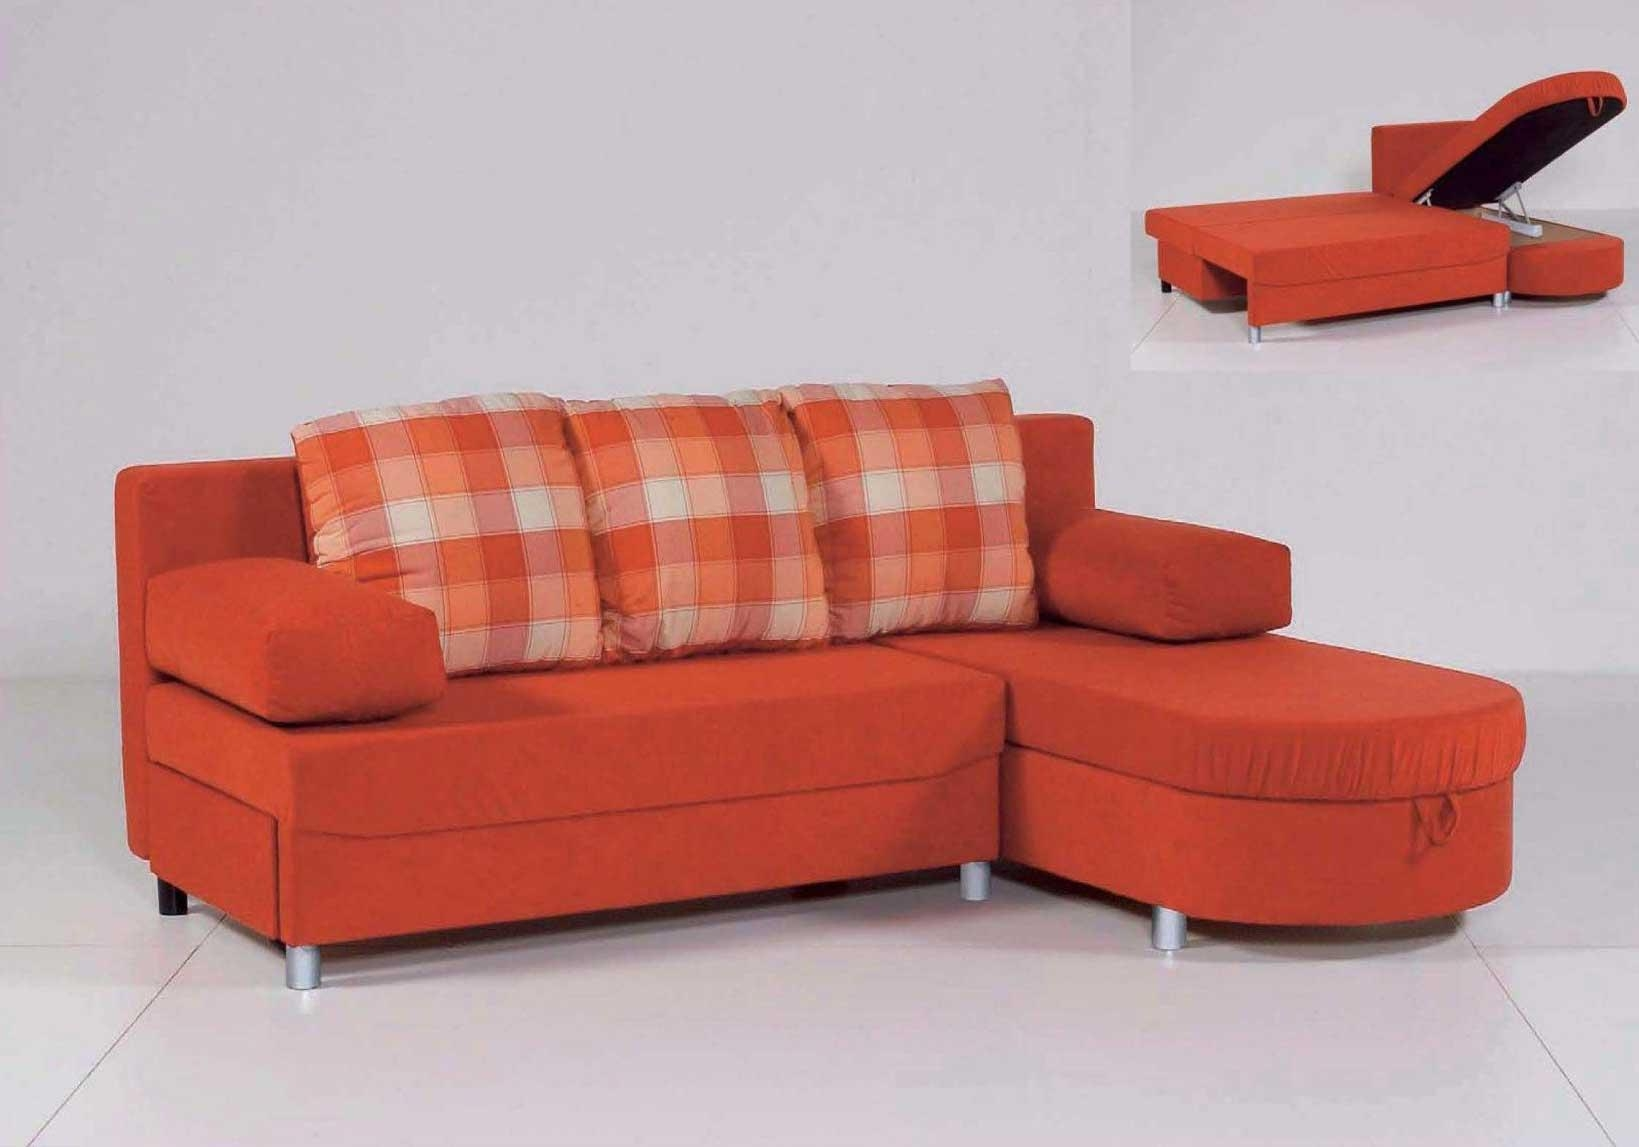 Davis Sleeper Sofa | Sofa Gallery | Kengire With Regard To Davis Sleeper Sofas (Image 7 of 20)